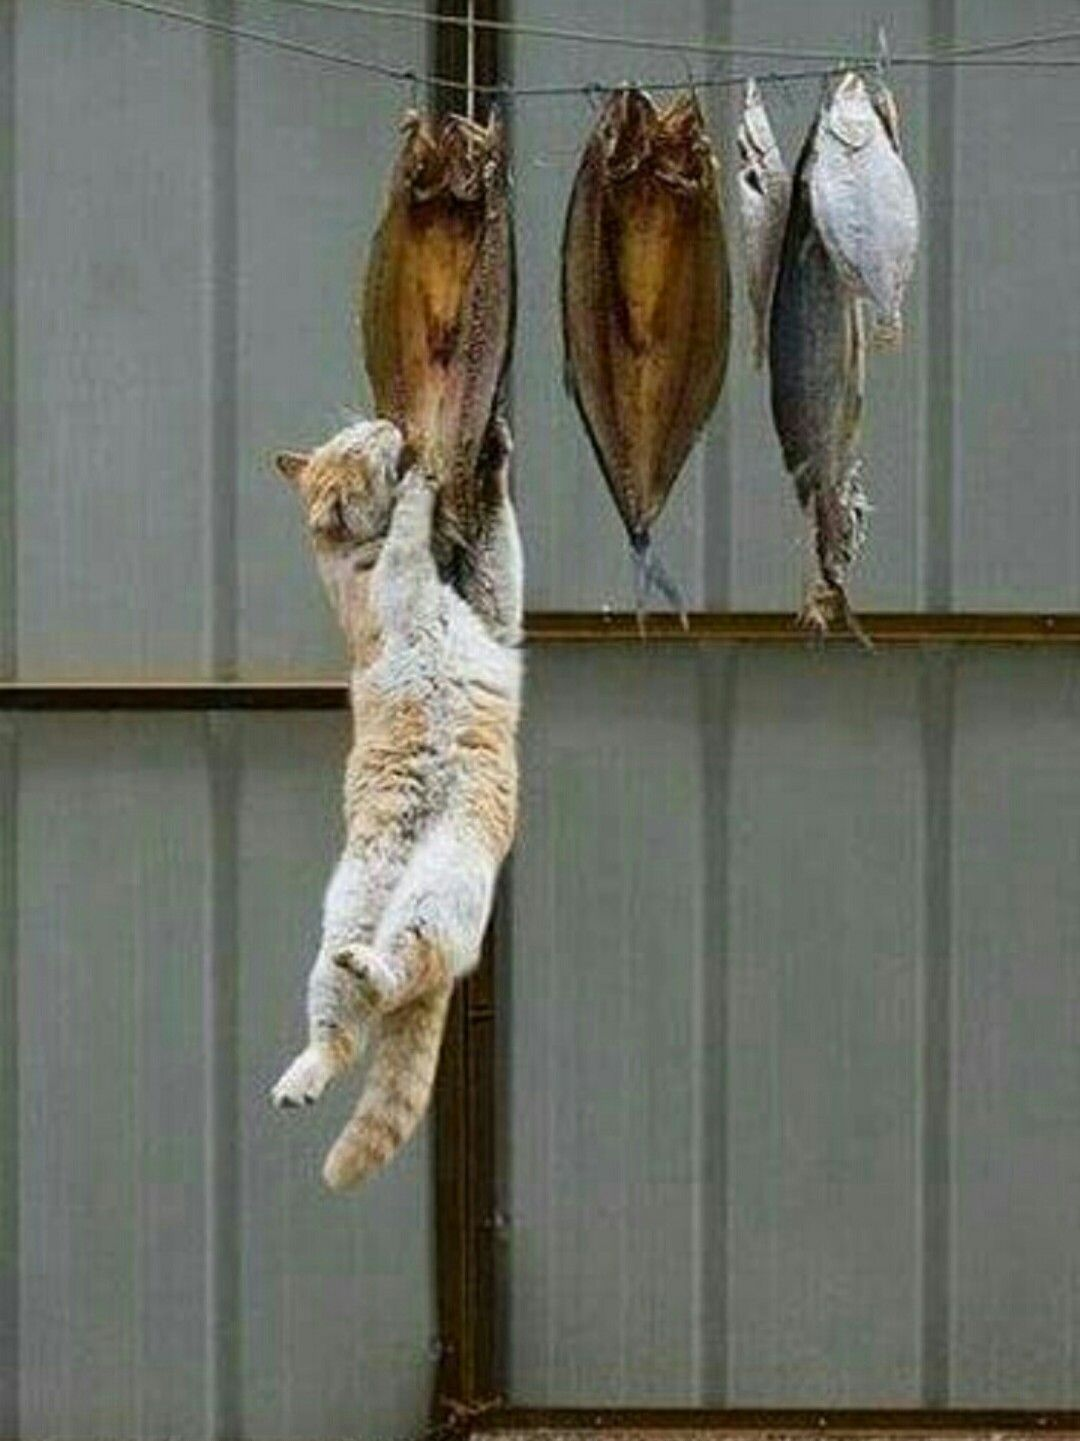 Me Hanging onto my food for dear life. Crazy cats, Cute